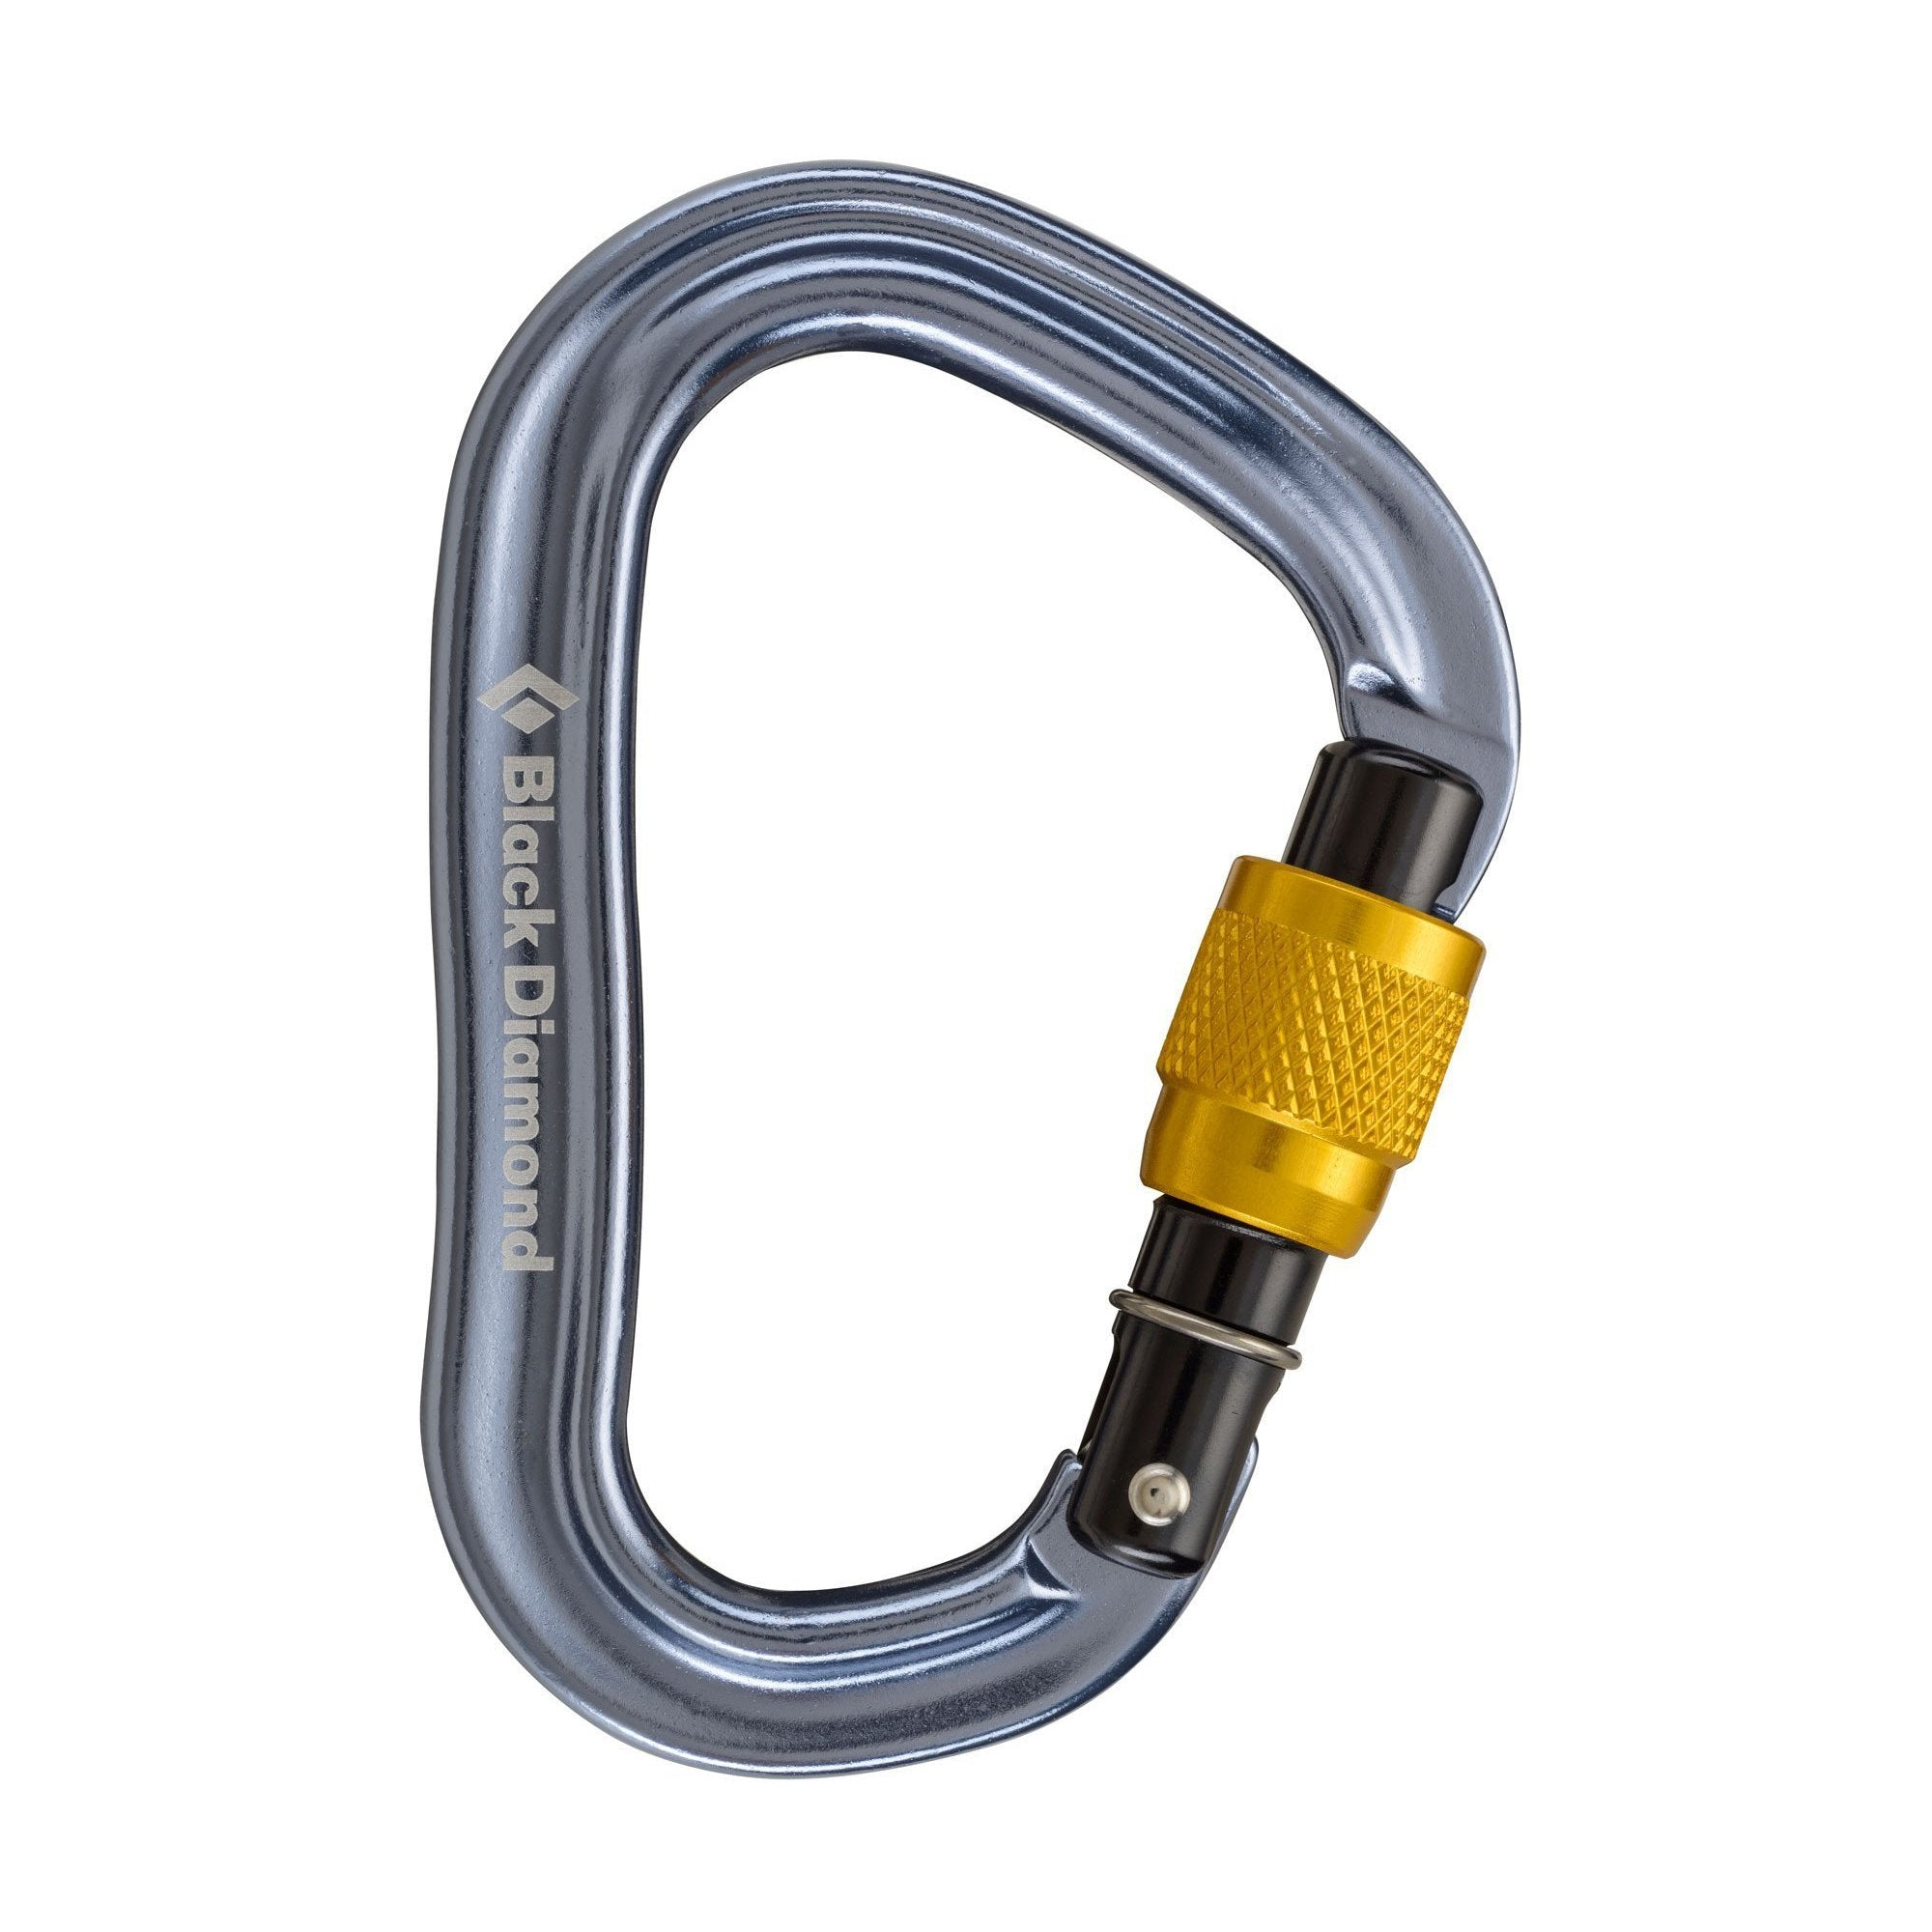 Black Diamond VaporLock Screwgate HMS carabiner, in silver colour with gold screw